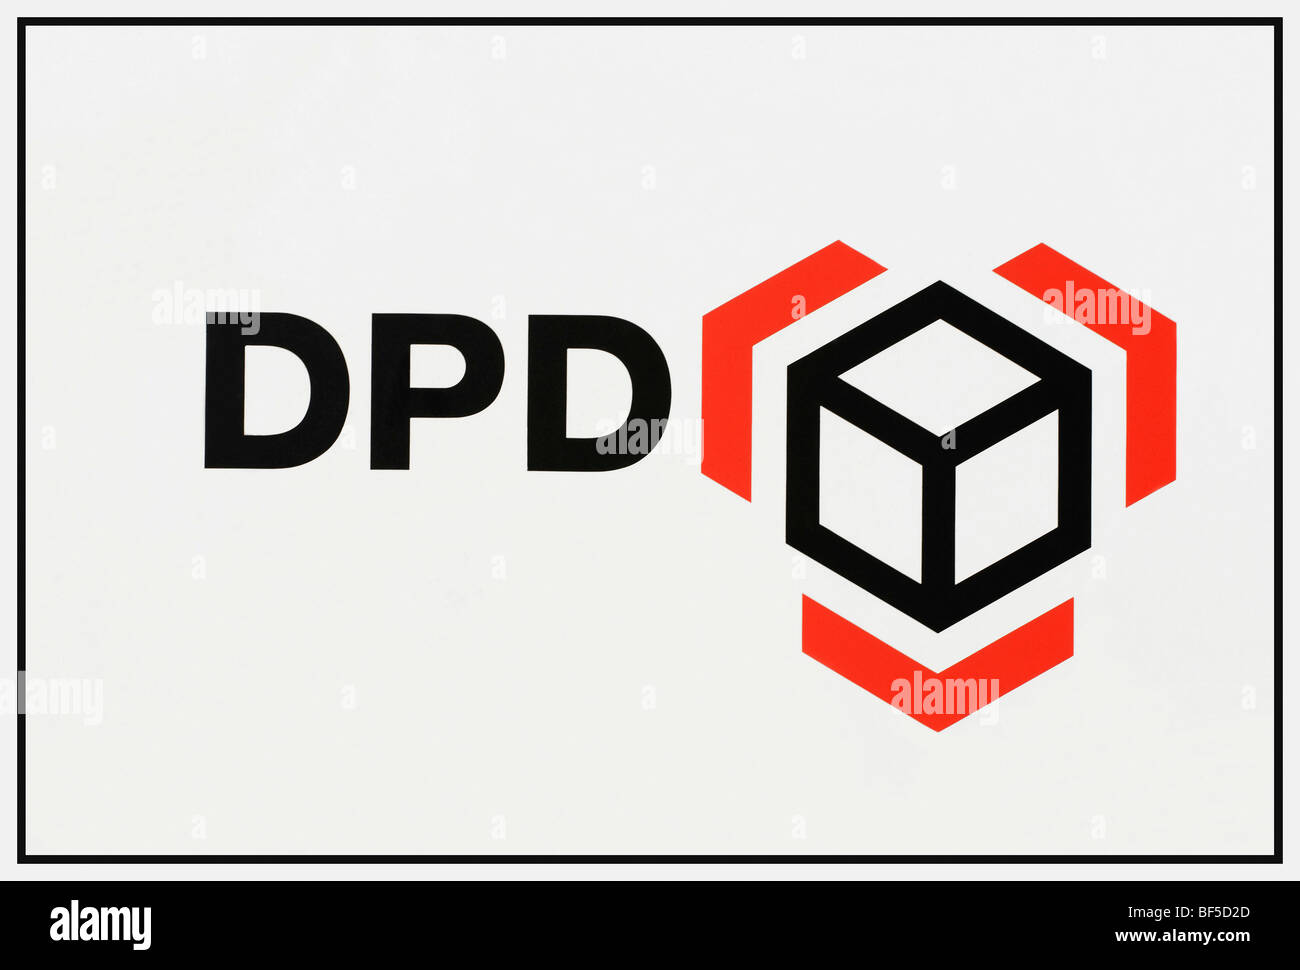 DPD logo, Dynamic Parcel Distribution GmbH & Co. KG - Stock Image